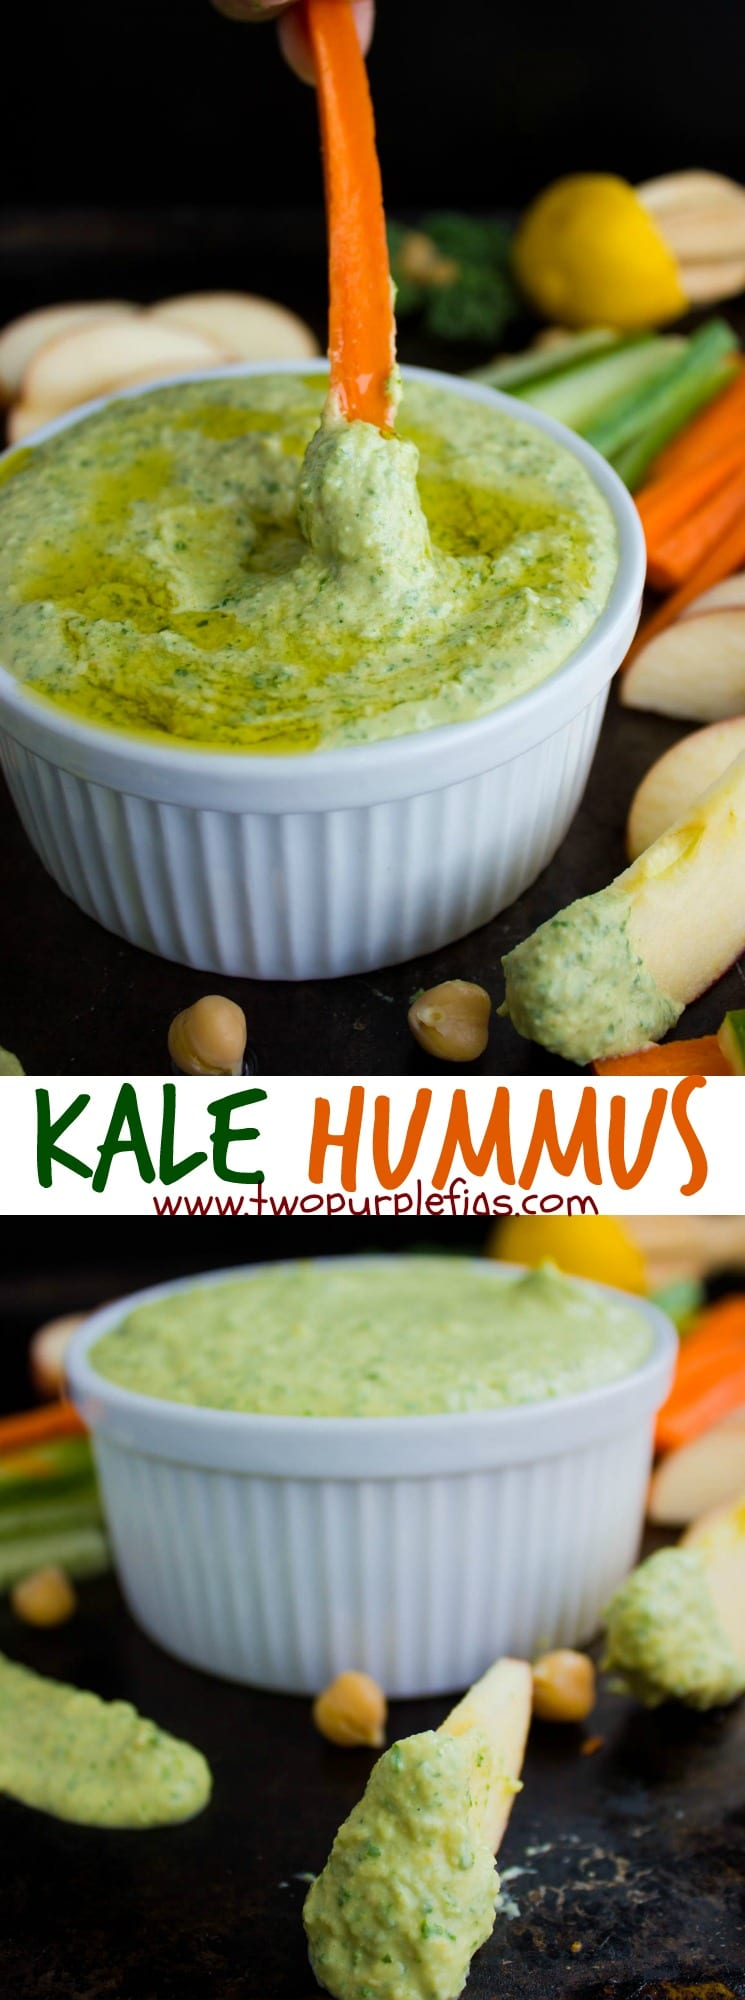 Kale Hummus | Embrace your inner green goddess with this Vegan, Gluten-free Garlic Kale Hummus Dip! It's a healthy, high-protein snack perfect for any time of the day. It can also be served as an easy appetizer to share with friends. #hummus, #kale, #dip, #appetizer, #easy, #vegan, #glutenfree, #realfood